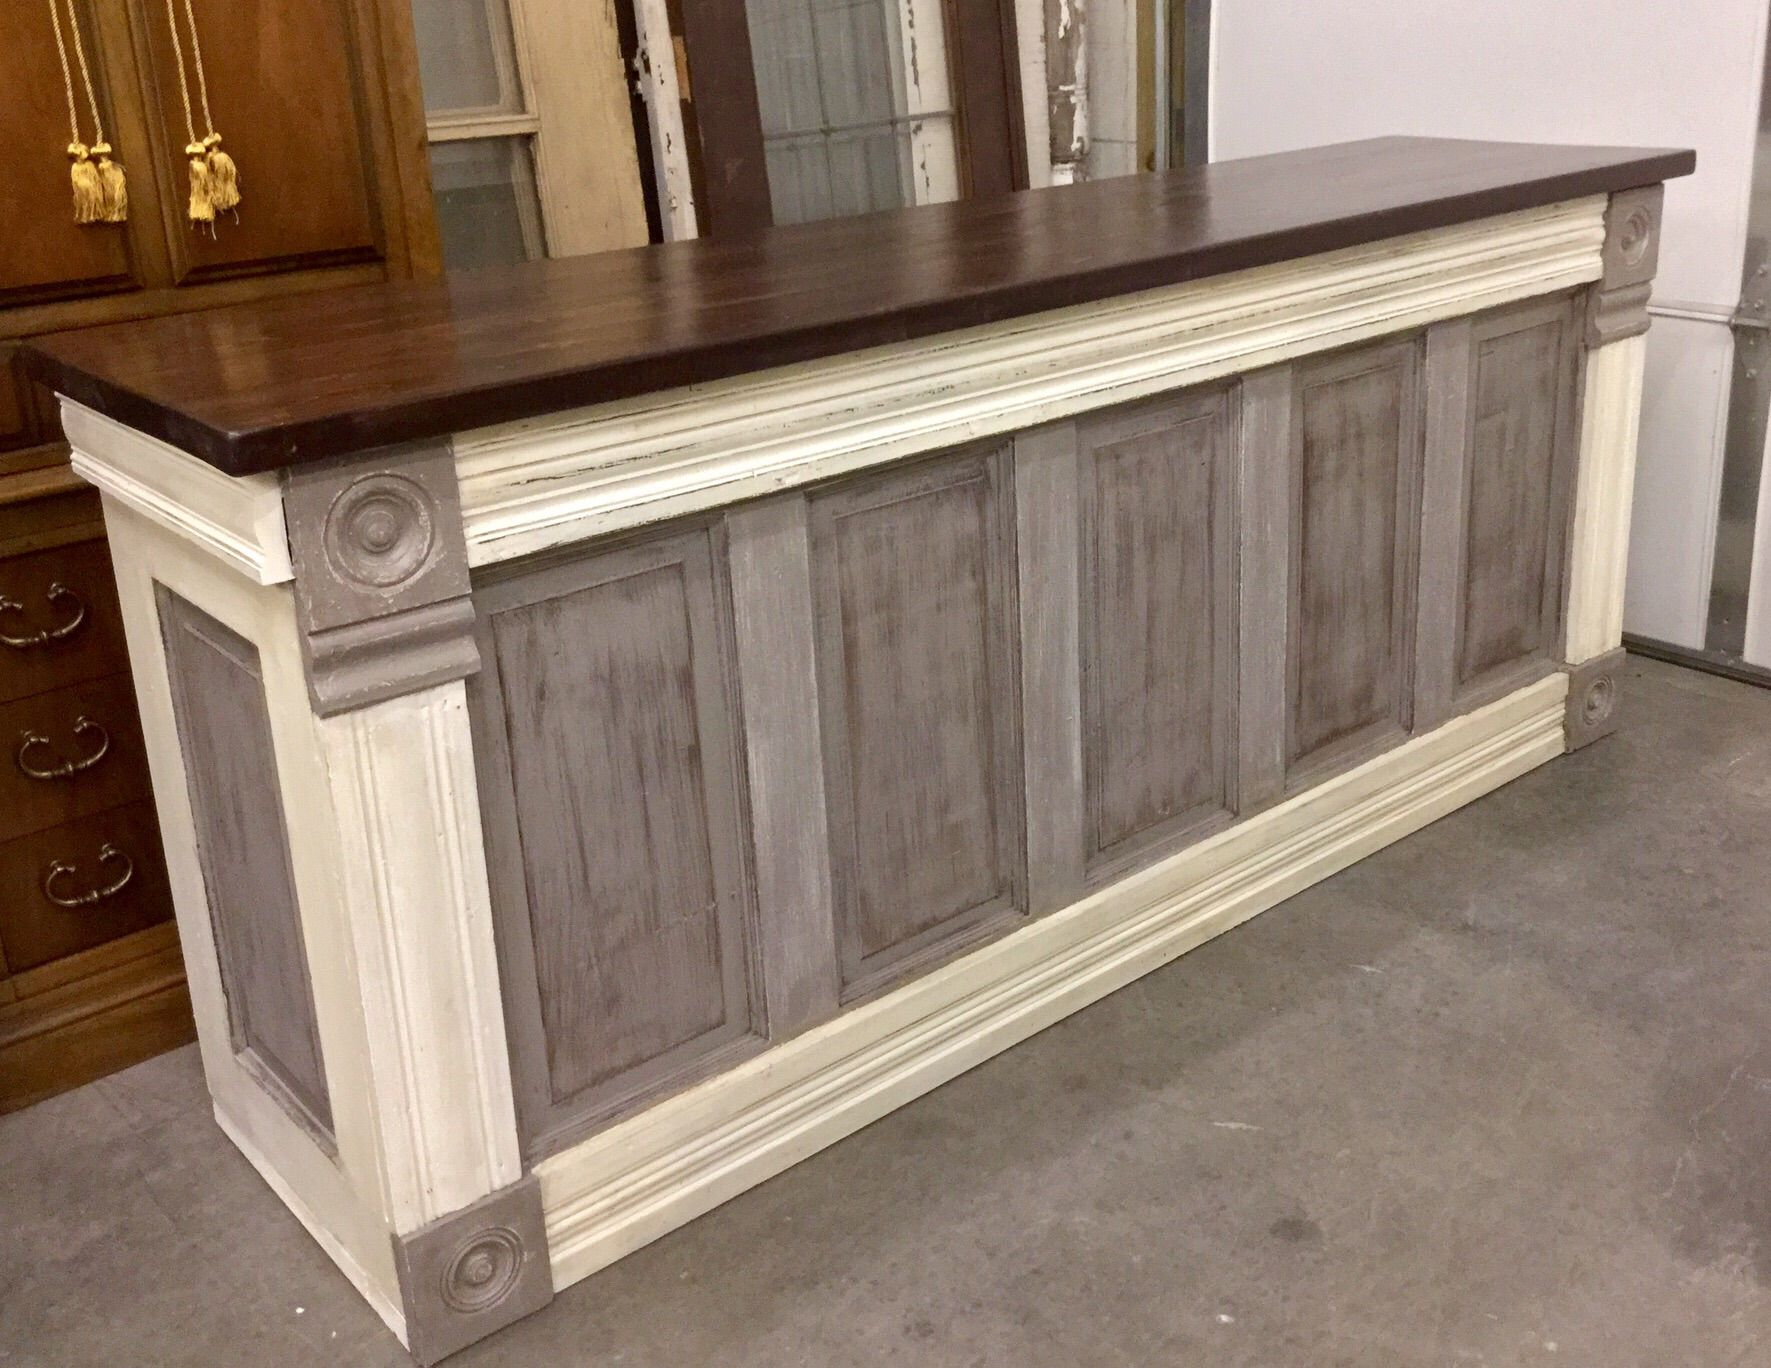 Just Finished This Urban Chic Custom Counter This Evening I Build